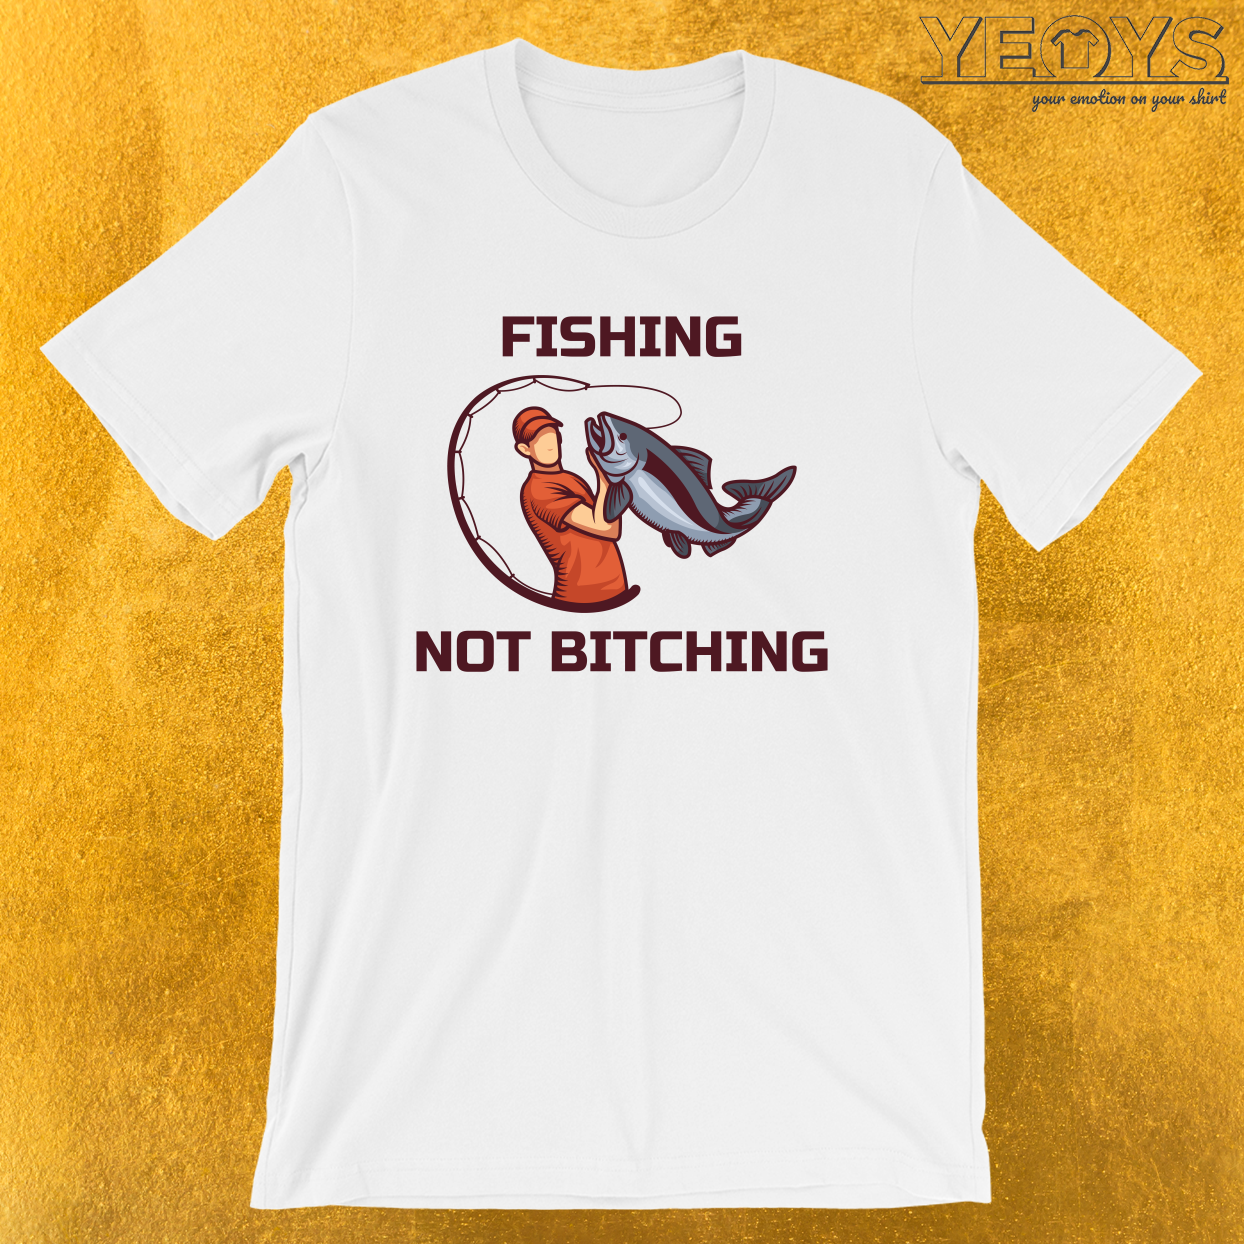 Funny Fishing Trip Quote – Fishing Not Bitching Tee